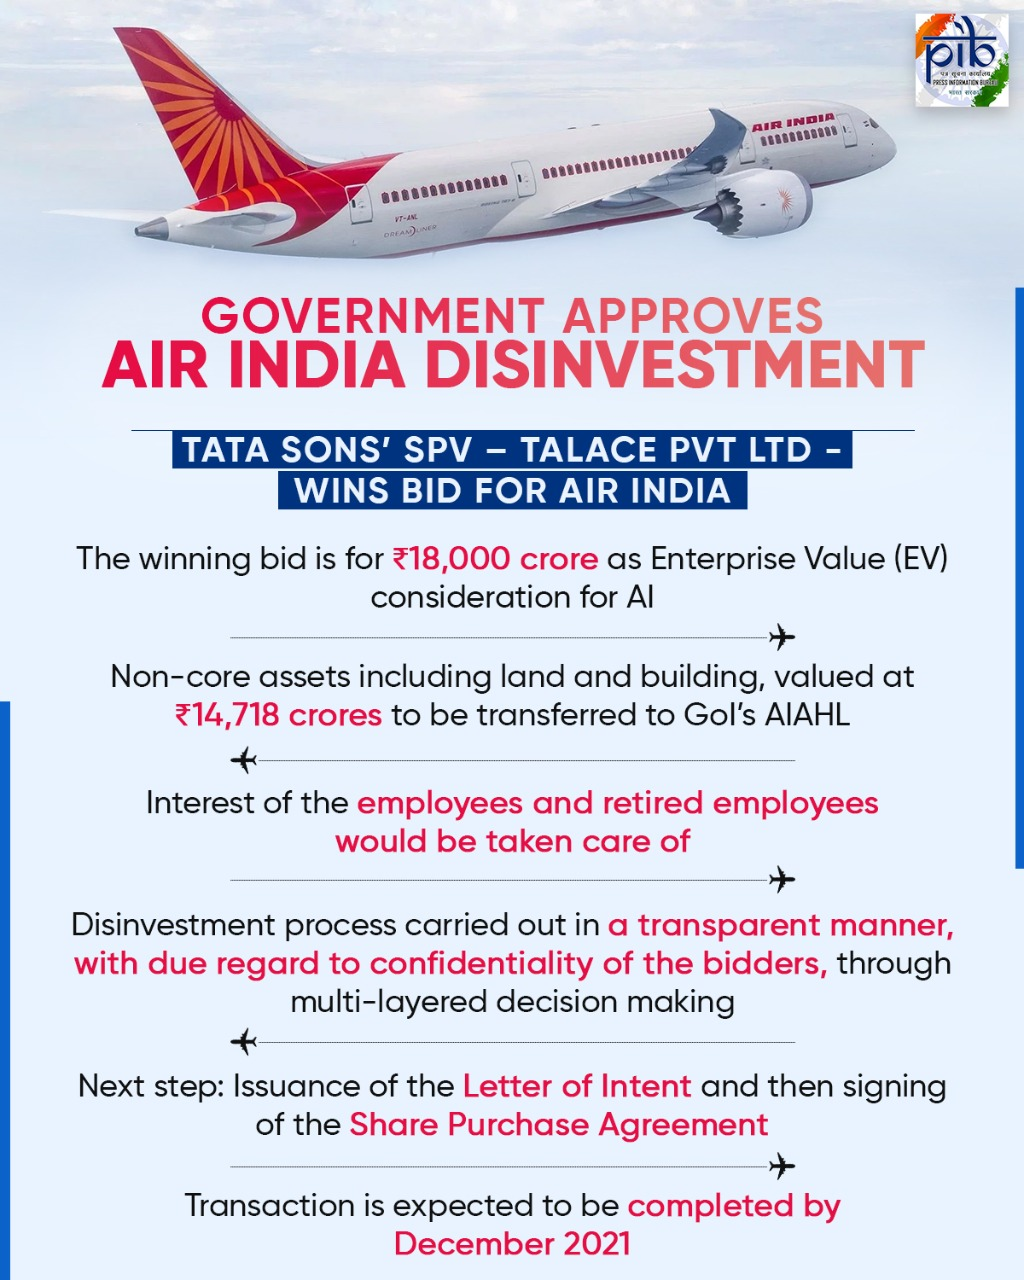 Government Approves Air India Disinvestment